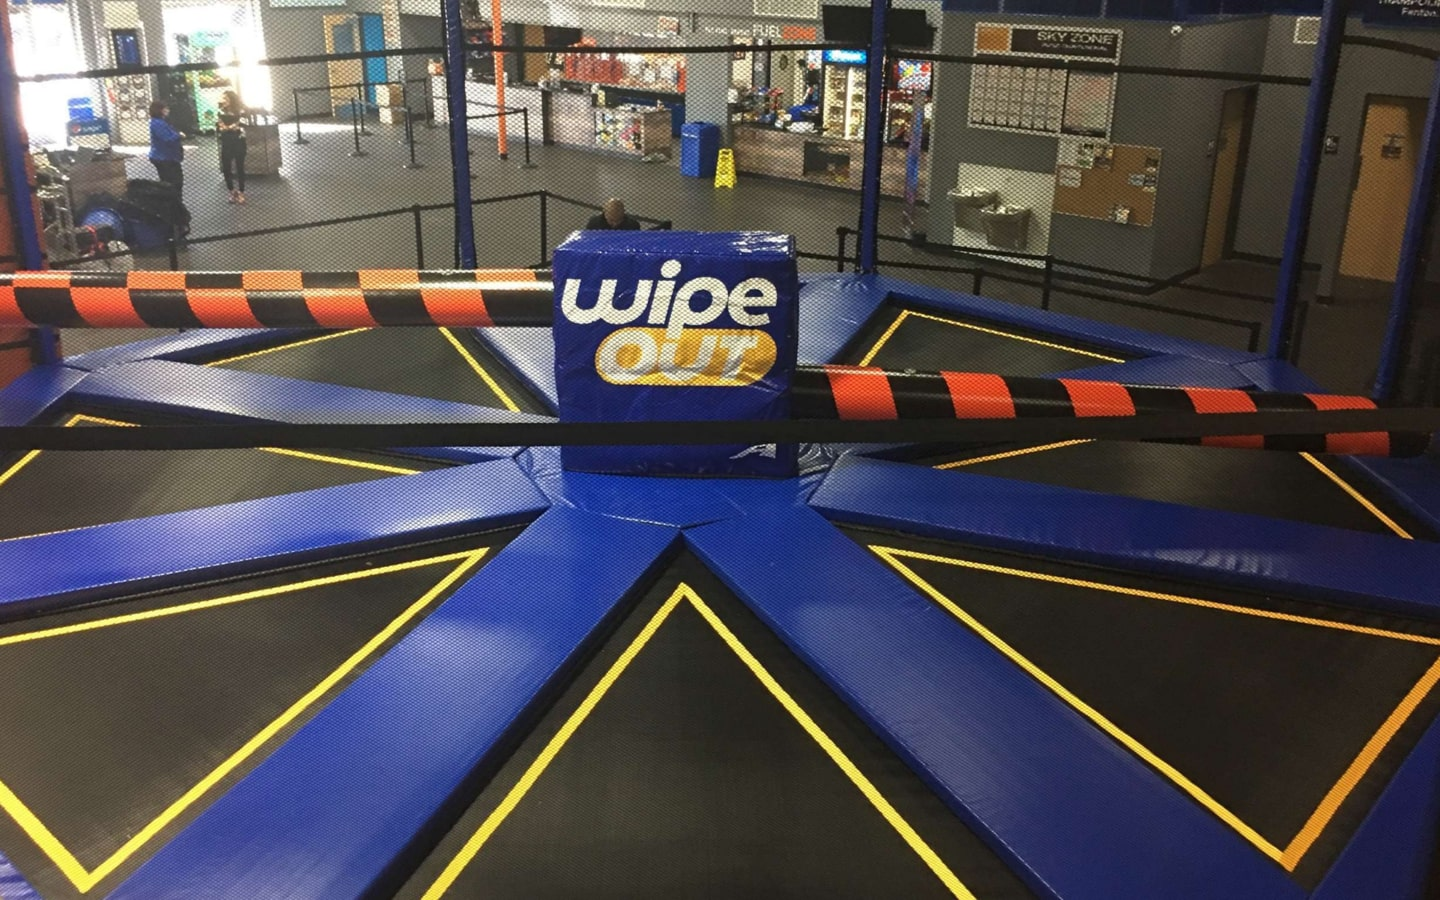 View of the Wipe Out activity at Sky Zone Dubai